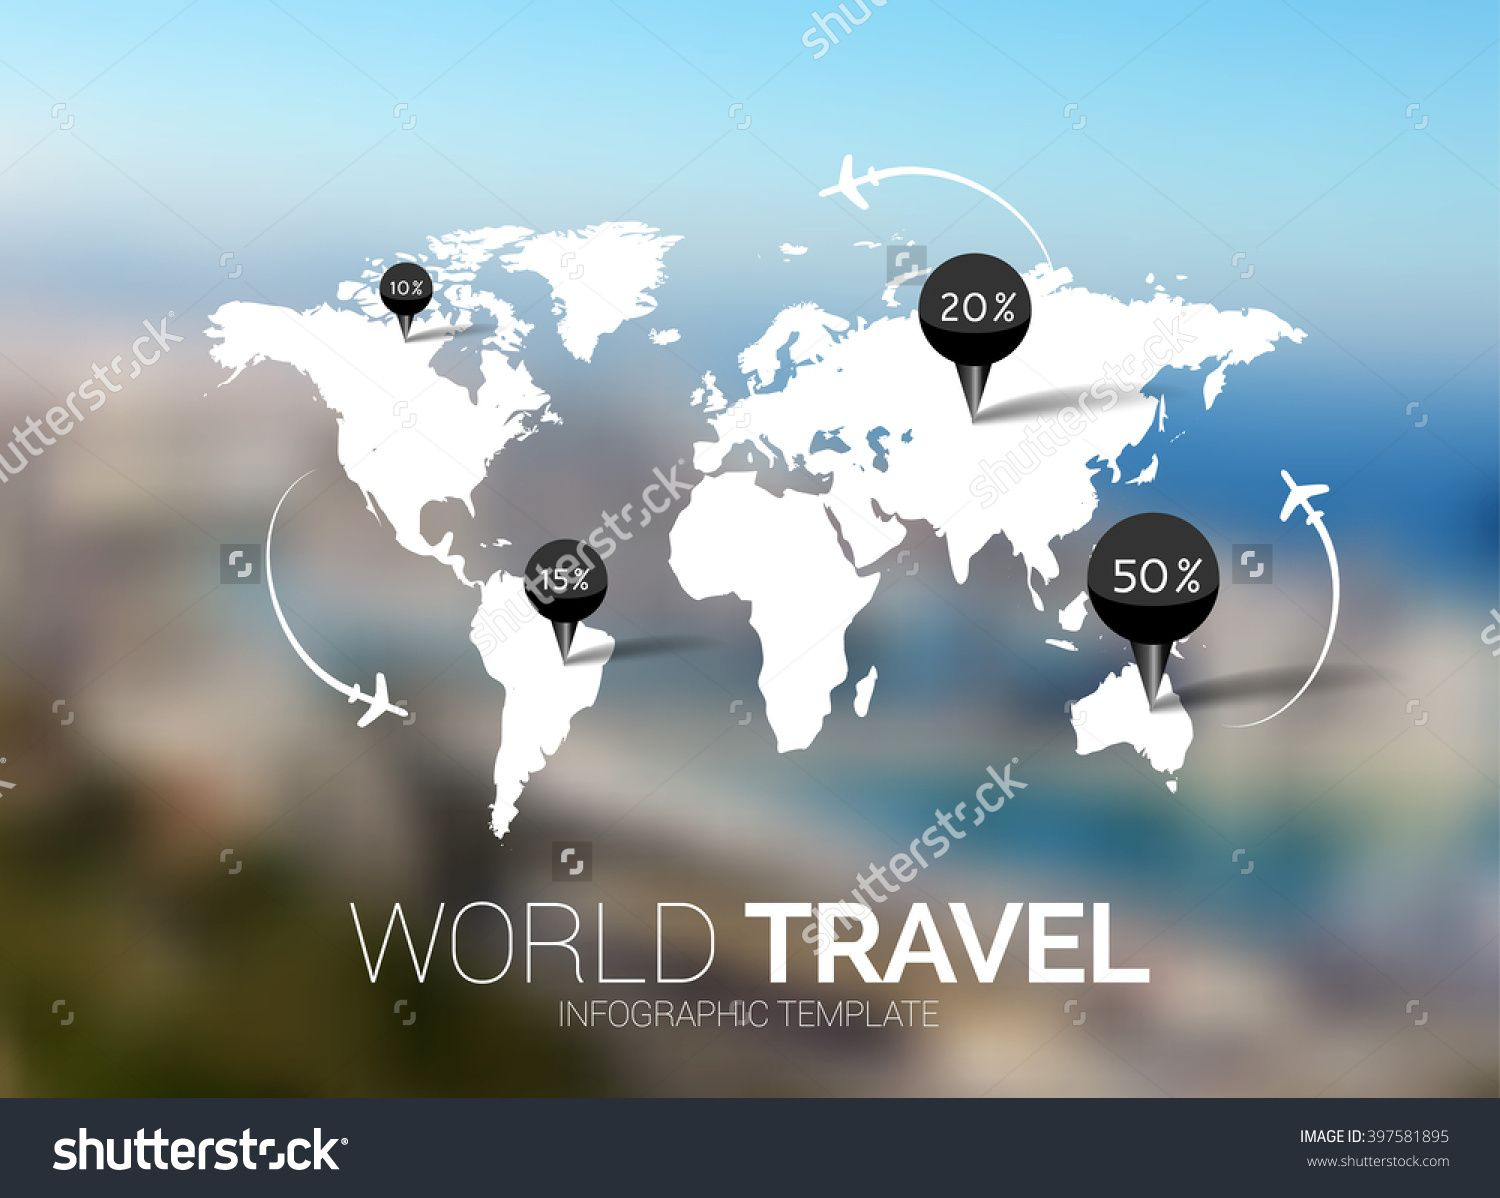 Vector template world map on blurred nature background points world map on blurred nature background points travel concept gumiabroncs Choice Image